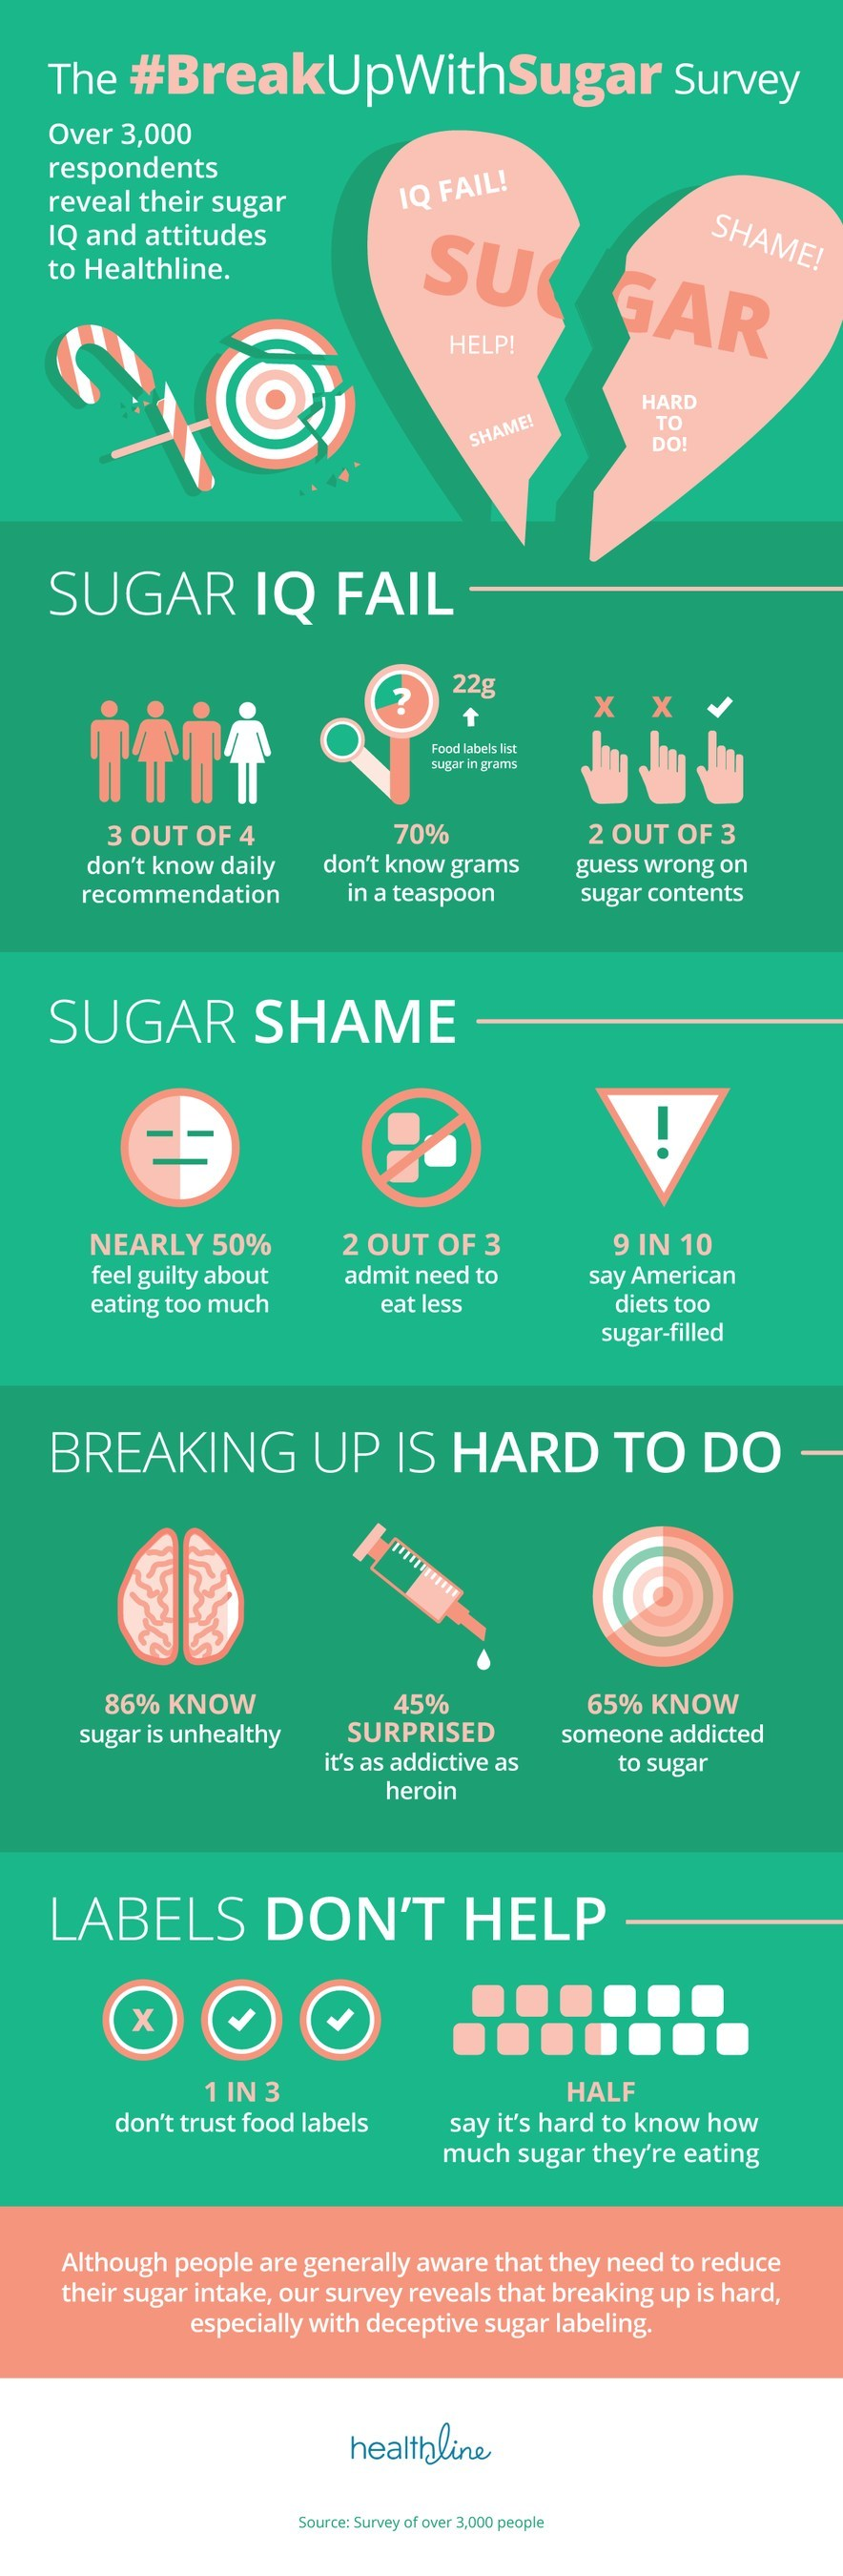 Healthline.com, the #2 health information website, conducted research among over 3,000 Americans on their knowledge of sugar and how it affects the body to gauge their relationship about their own sugar consumption and the effects it has on them. The Healthline Sugar Survey finds that while Americans are aware of the negative effects of sugar, they aren't doing much about it because they don't actually know how.